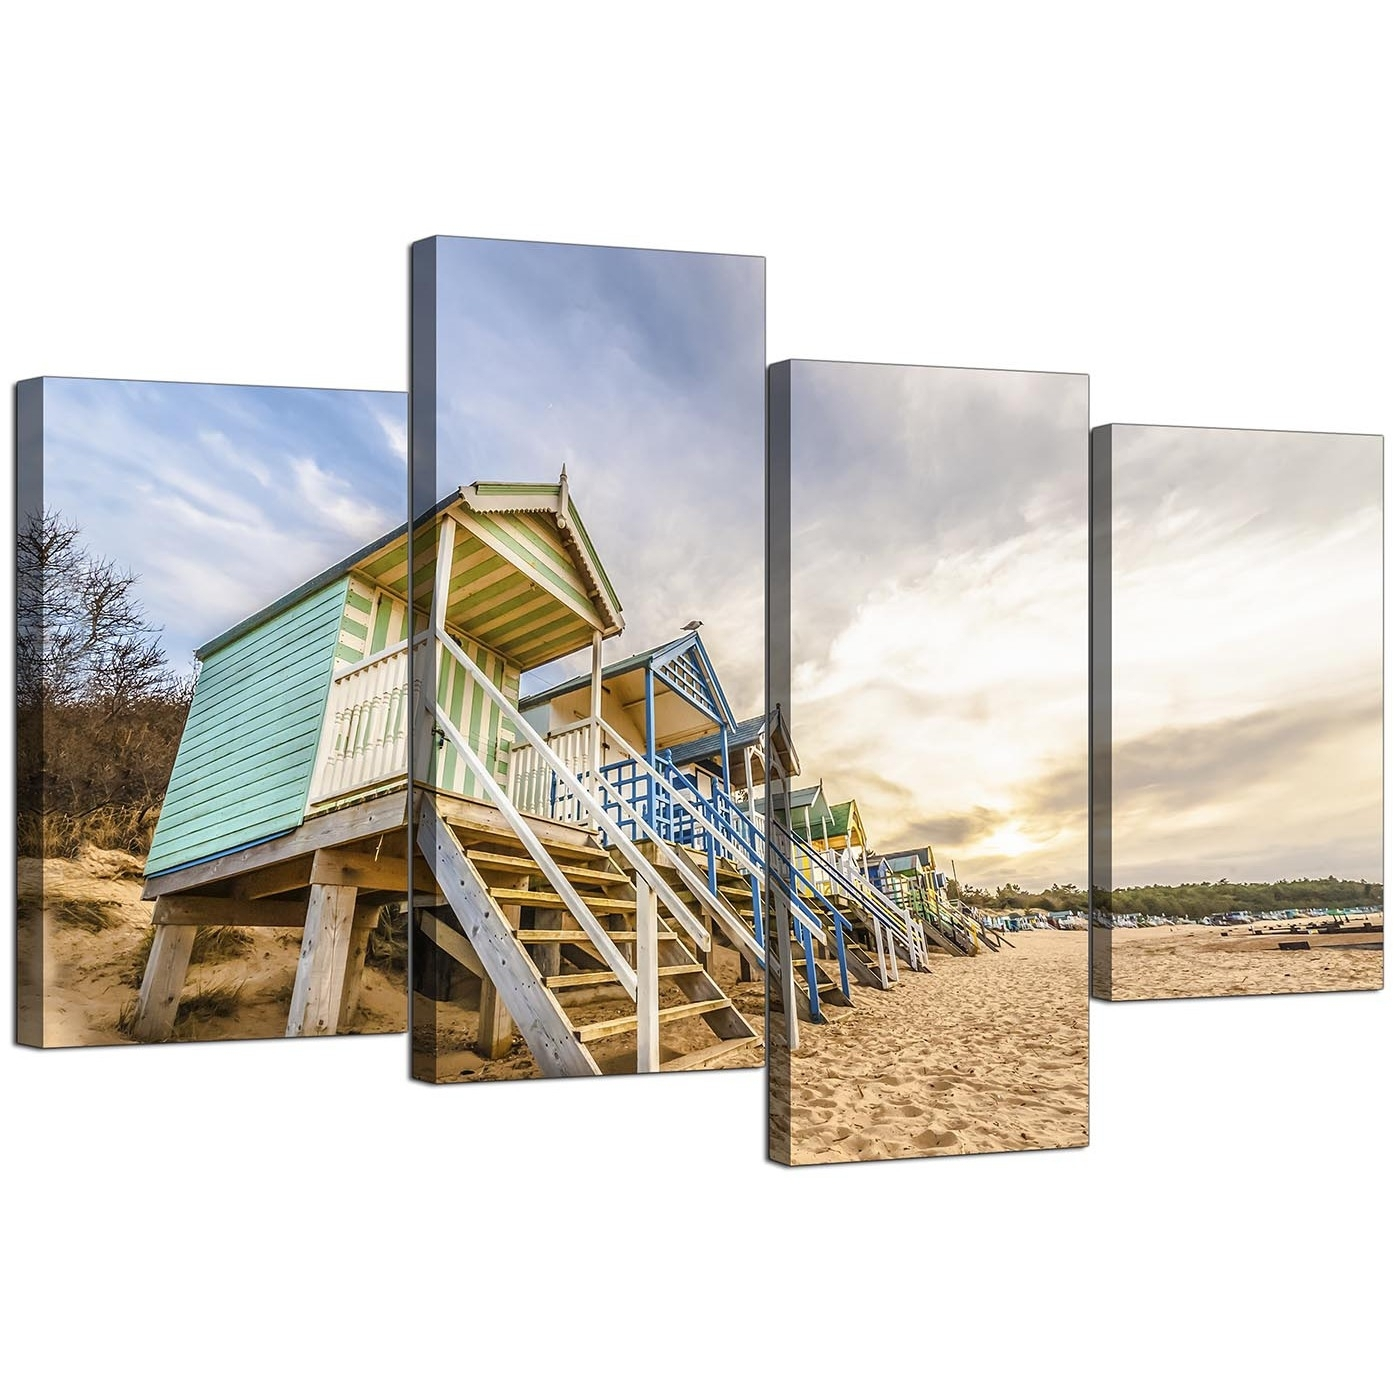 Canvas Wall Art Of Beach Huts For Your Living Room - Set Of 4 regarding Cheap Large Canvas Wall Art (Image 12 of 20)